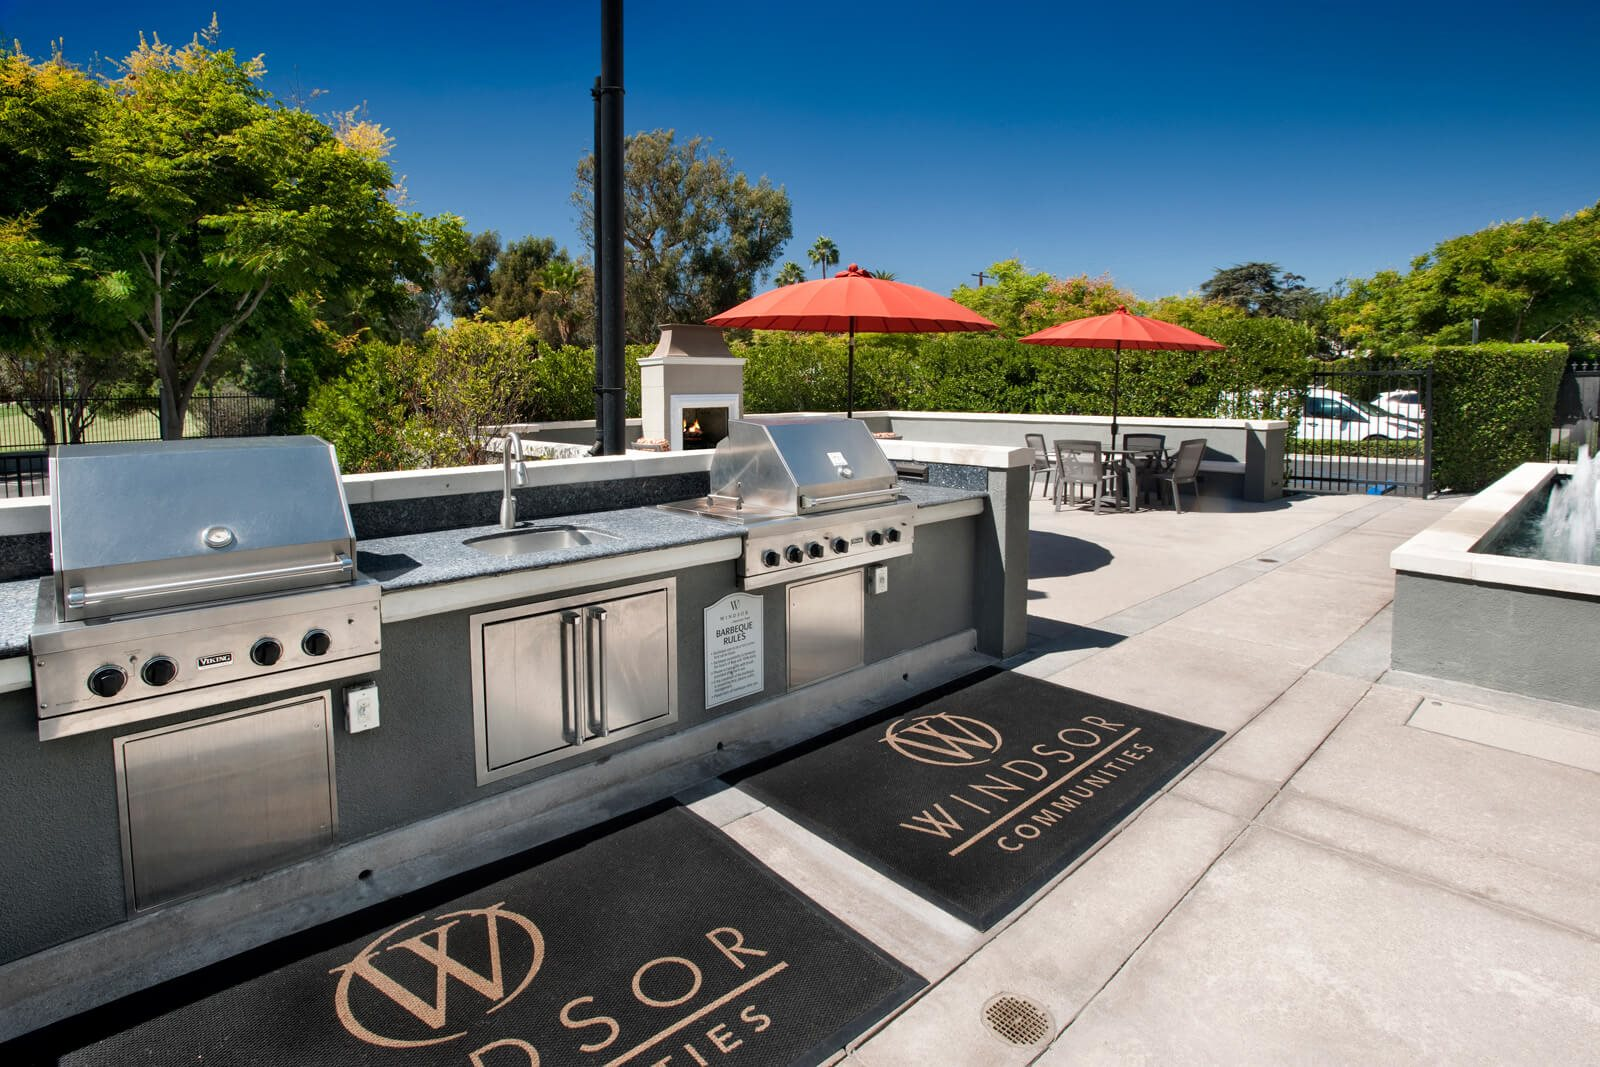 Community Grilling Stations at Windsor at Hancock Park, Los Angeles, California